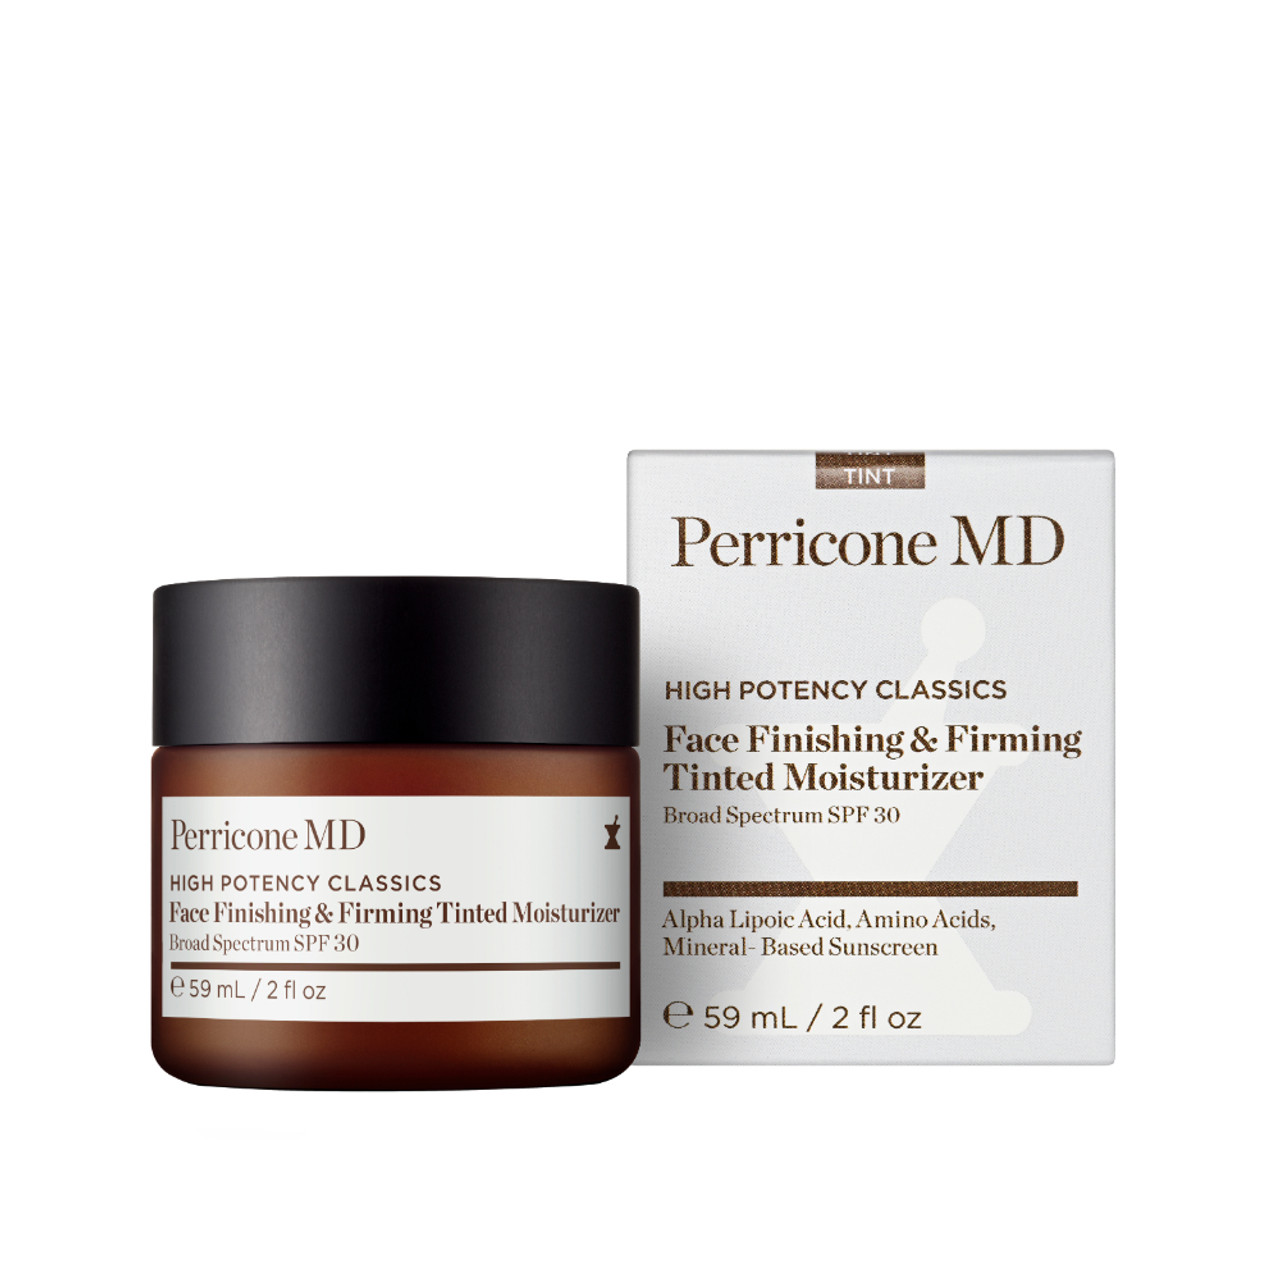 Perricone MD Face Finishing & Firming Moisturizer Tinted SPF 30 - No Cap